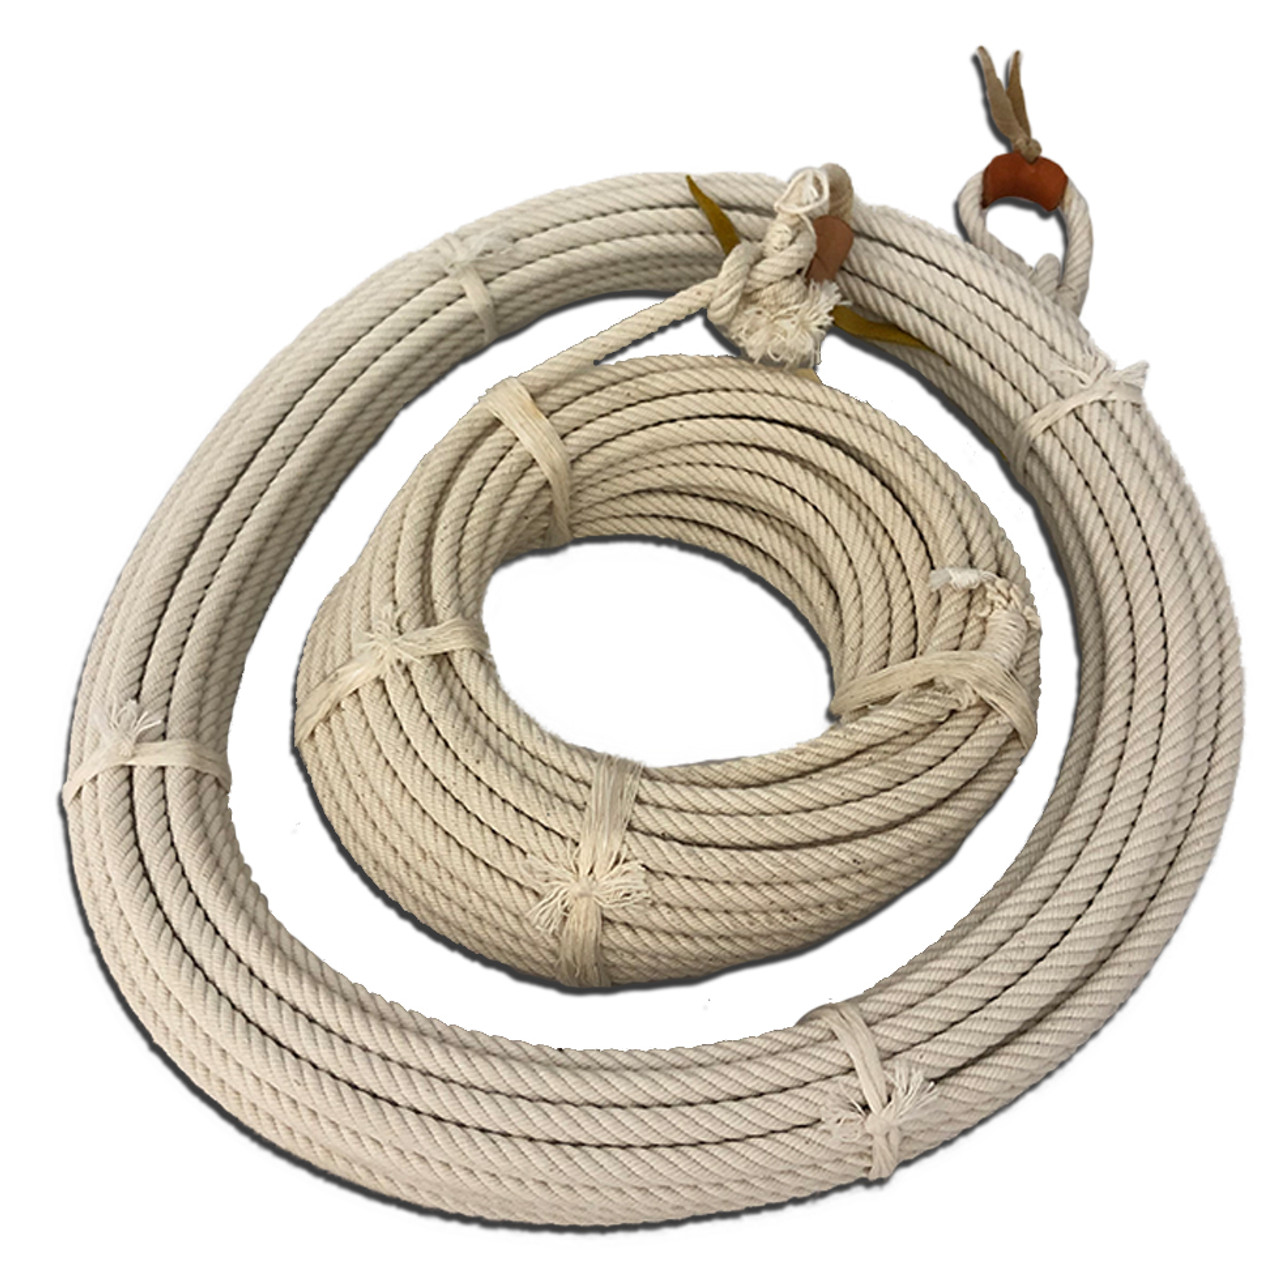 Cotton ranch rope, available in 45' or 60' sizes.